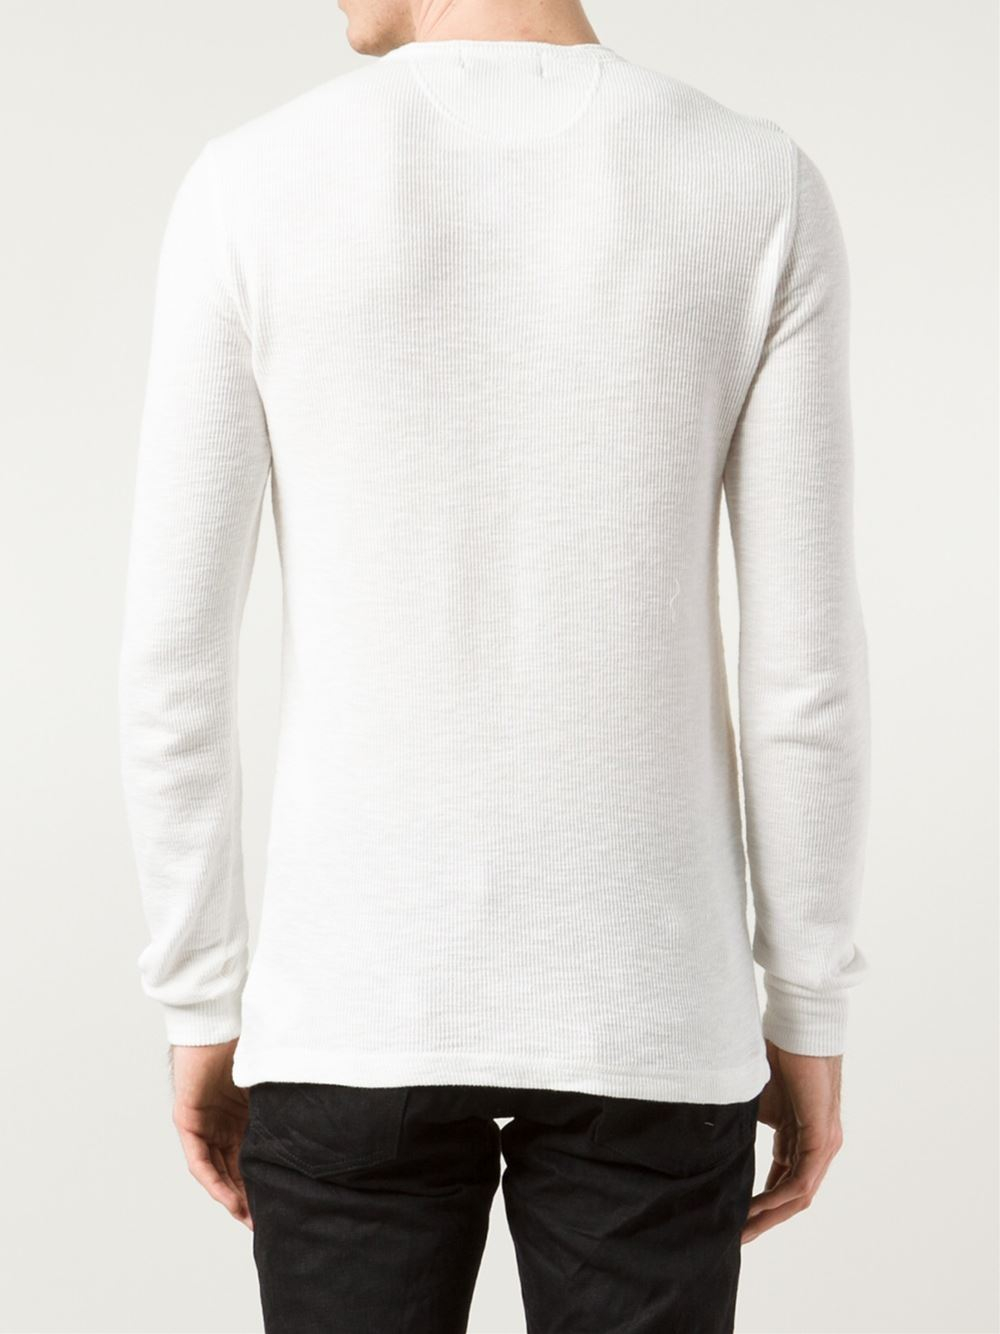 Rrl ribbed henley t shirt in white for men lyst for Mens ribbed t shirts